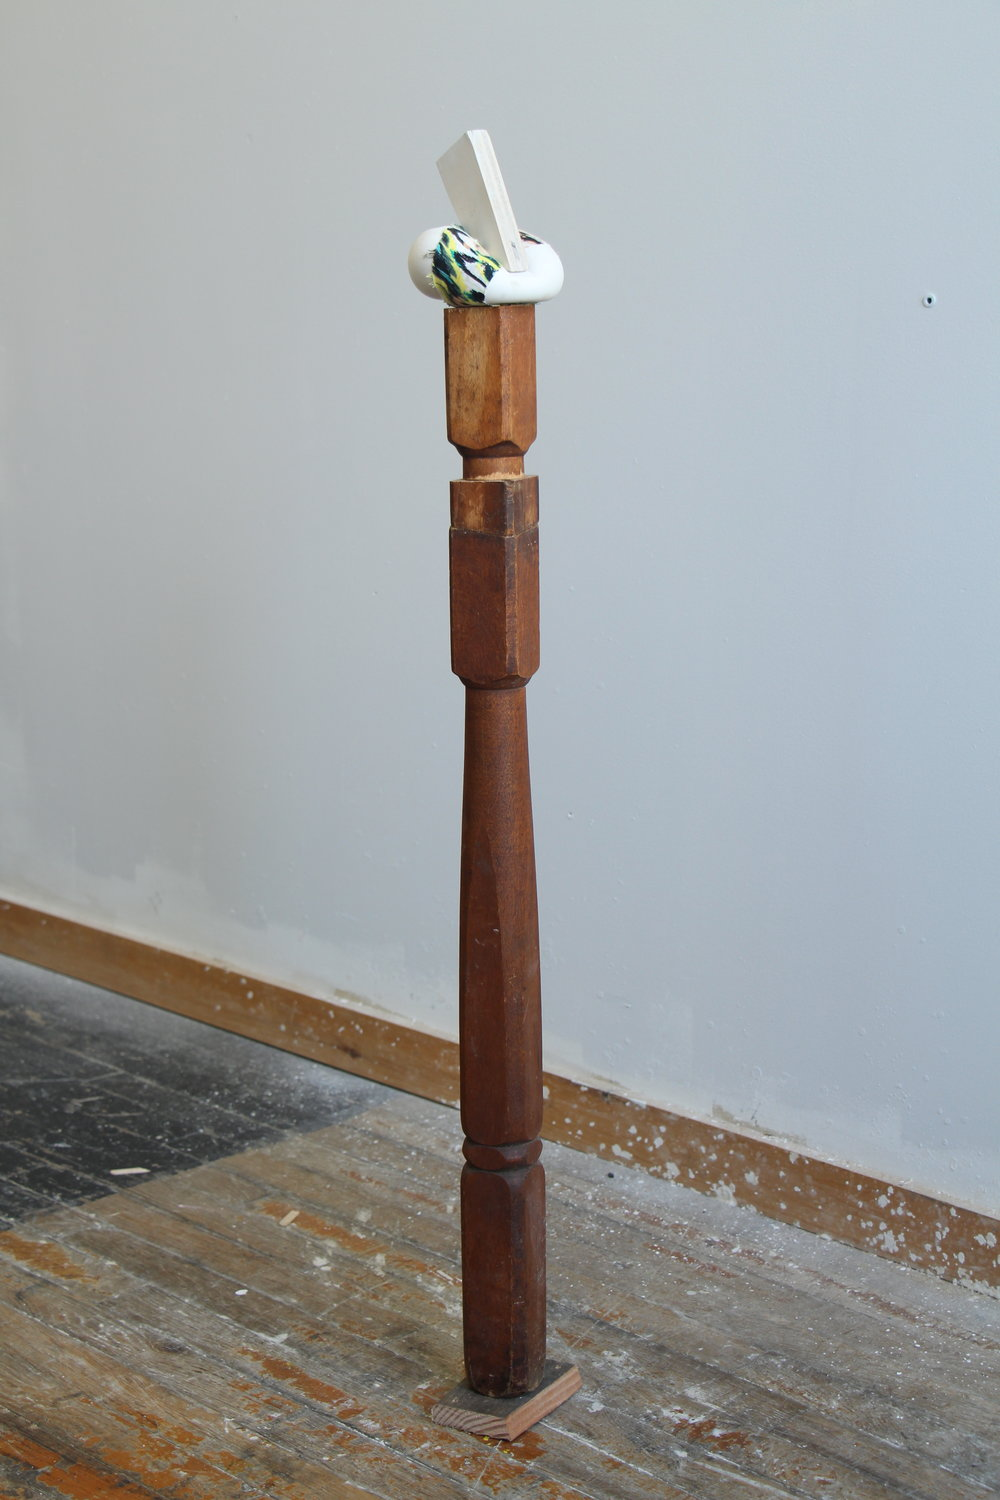 "And as Honeysuckle Is Sweet so Is This Flower Salt, 2016 plaster, fabric, wood 41 x 4 x 5"" (with base)"